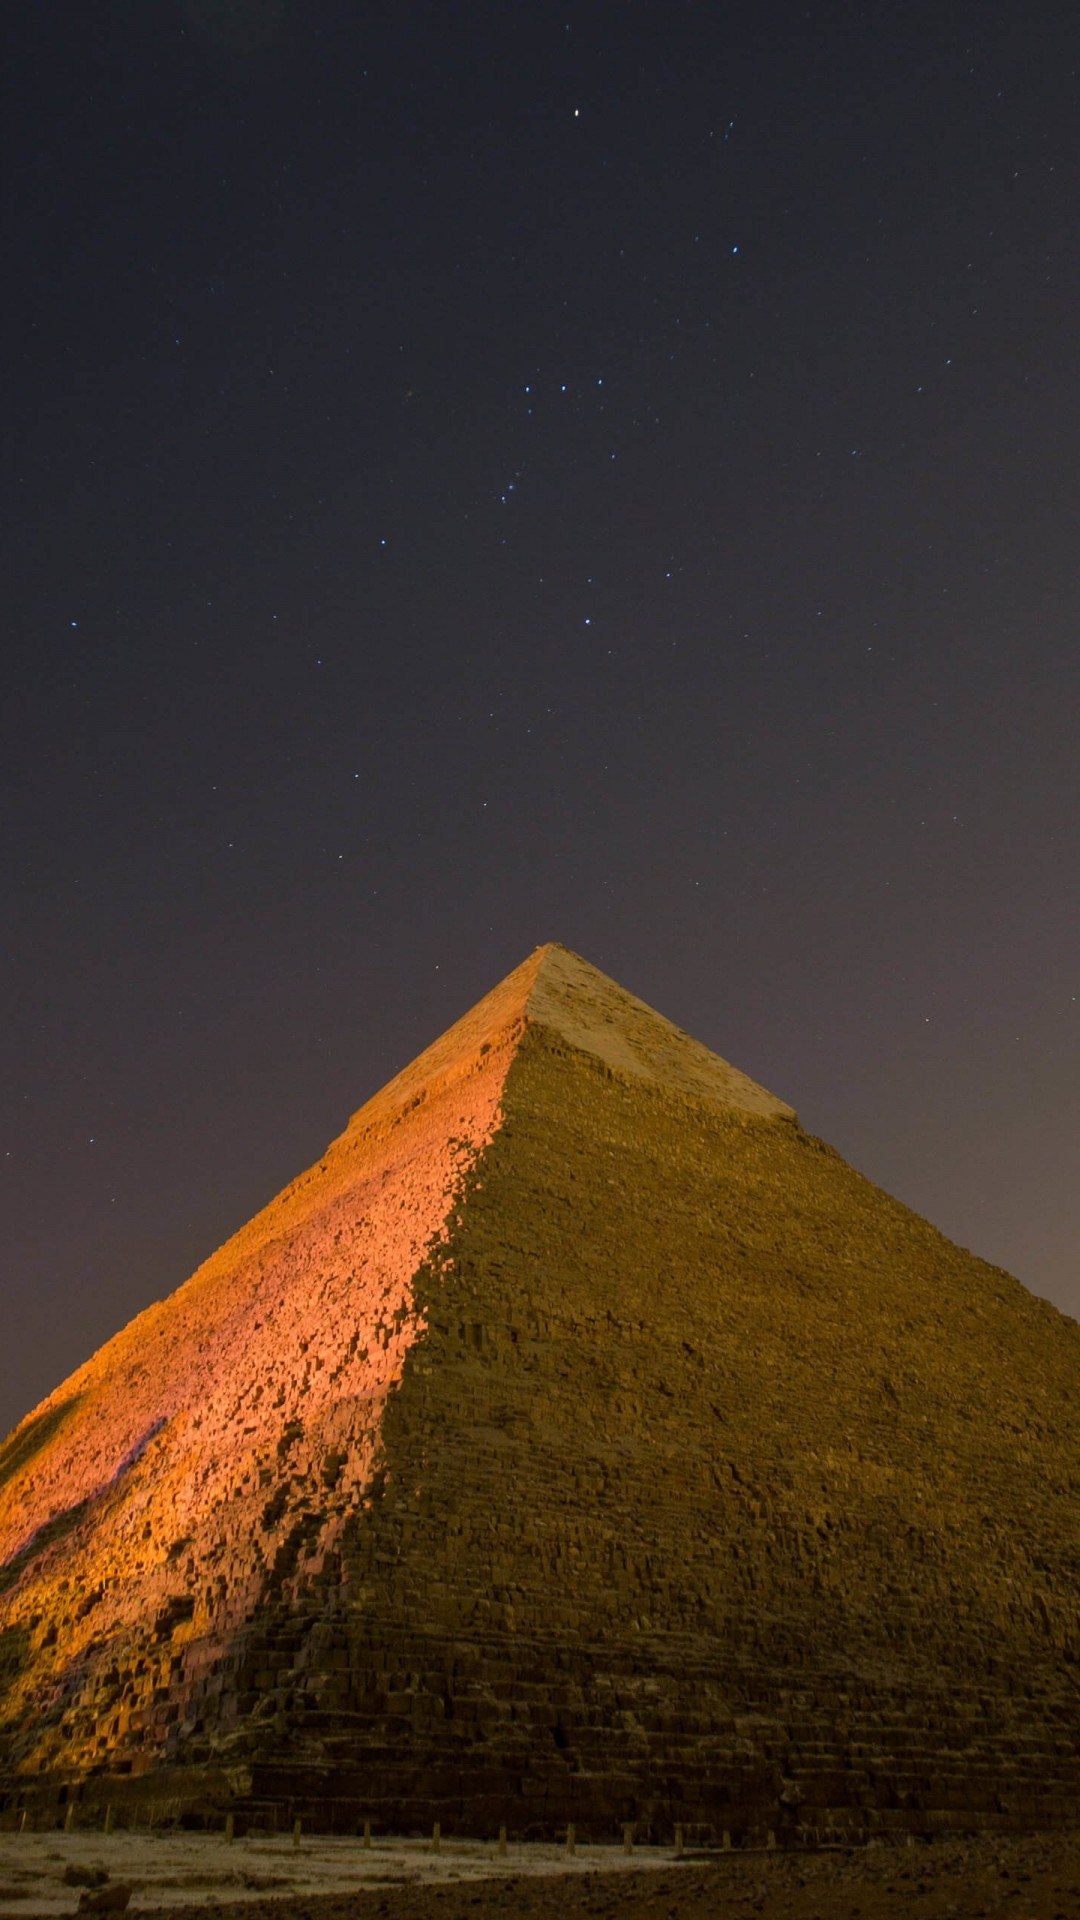 Pyramid by Night Wallpaper for Google Nexus 5X